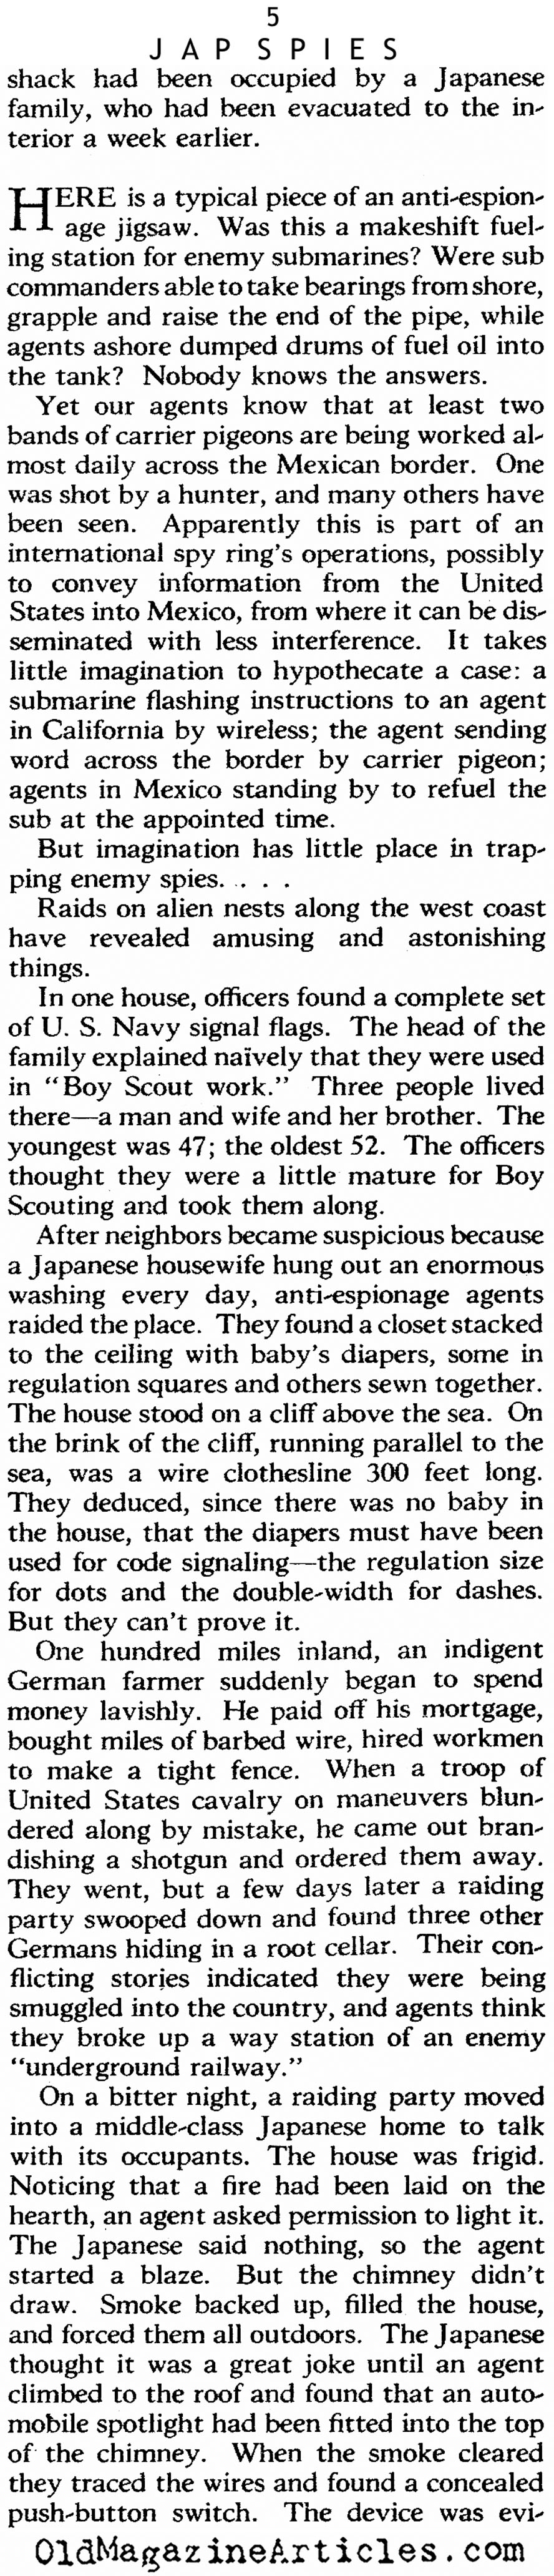 Finding Japanese Spies (The American Magazine, 1942)